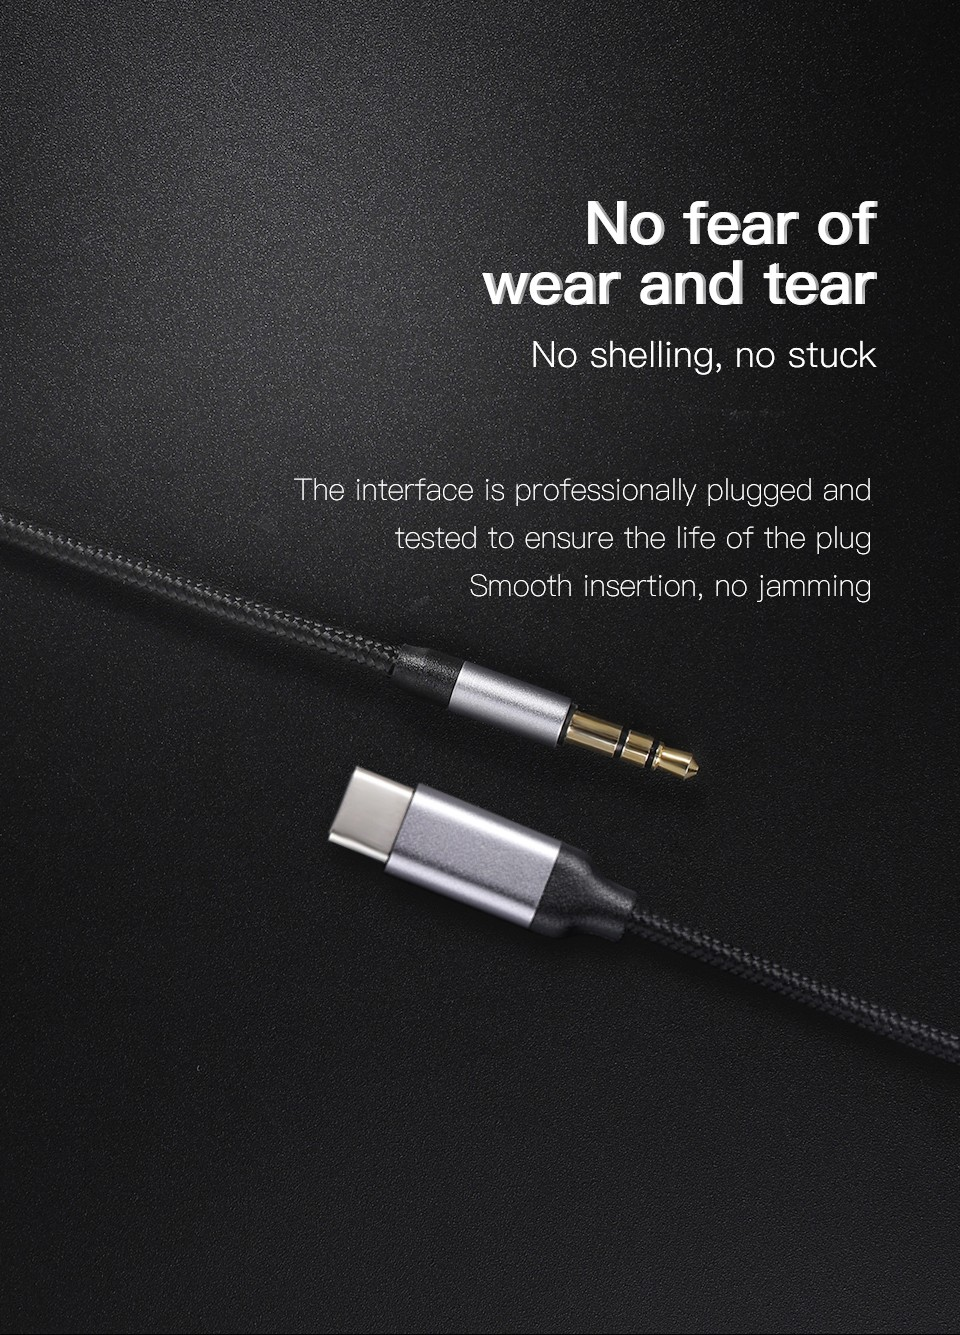 KUULAA KL-O09 Cable Type-C 3.5mm Audio Cable No fear of wear and tear